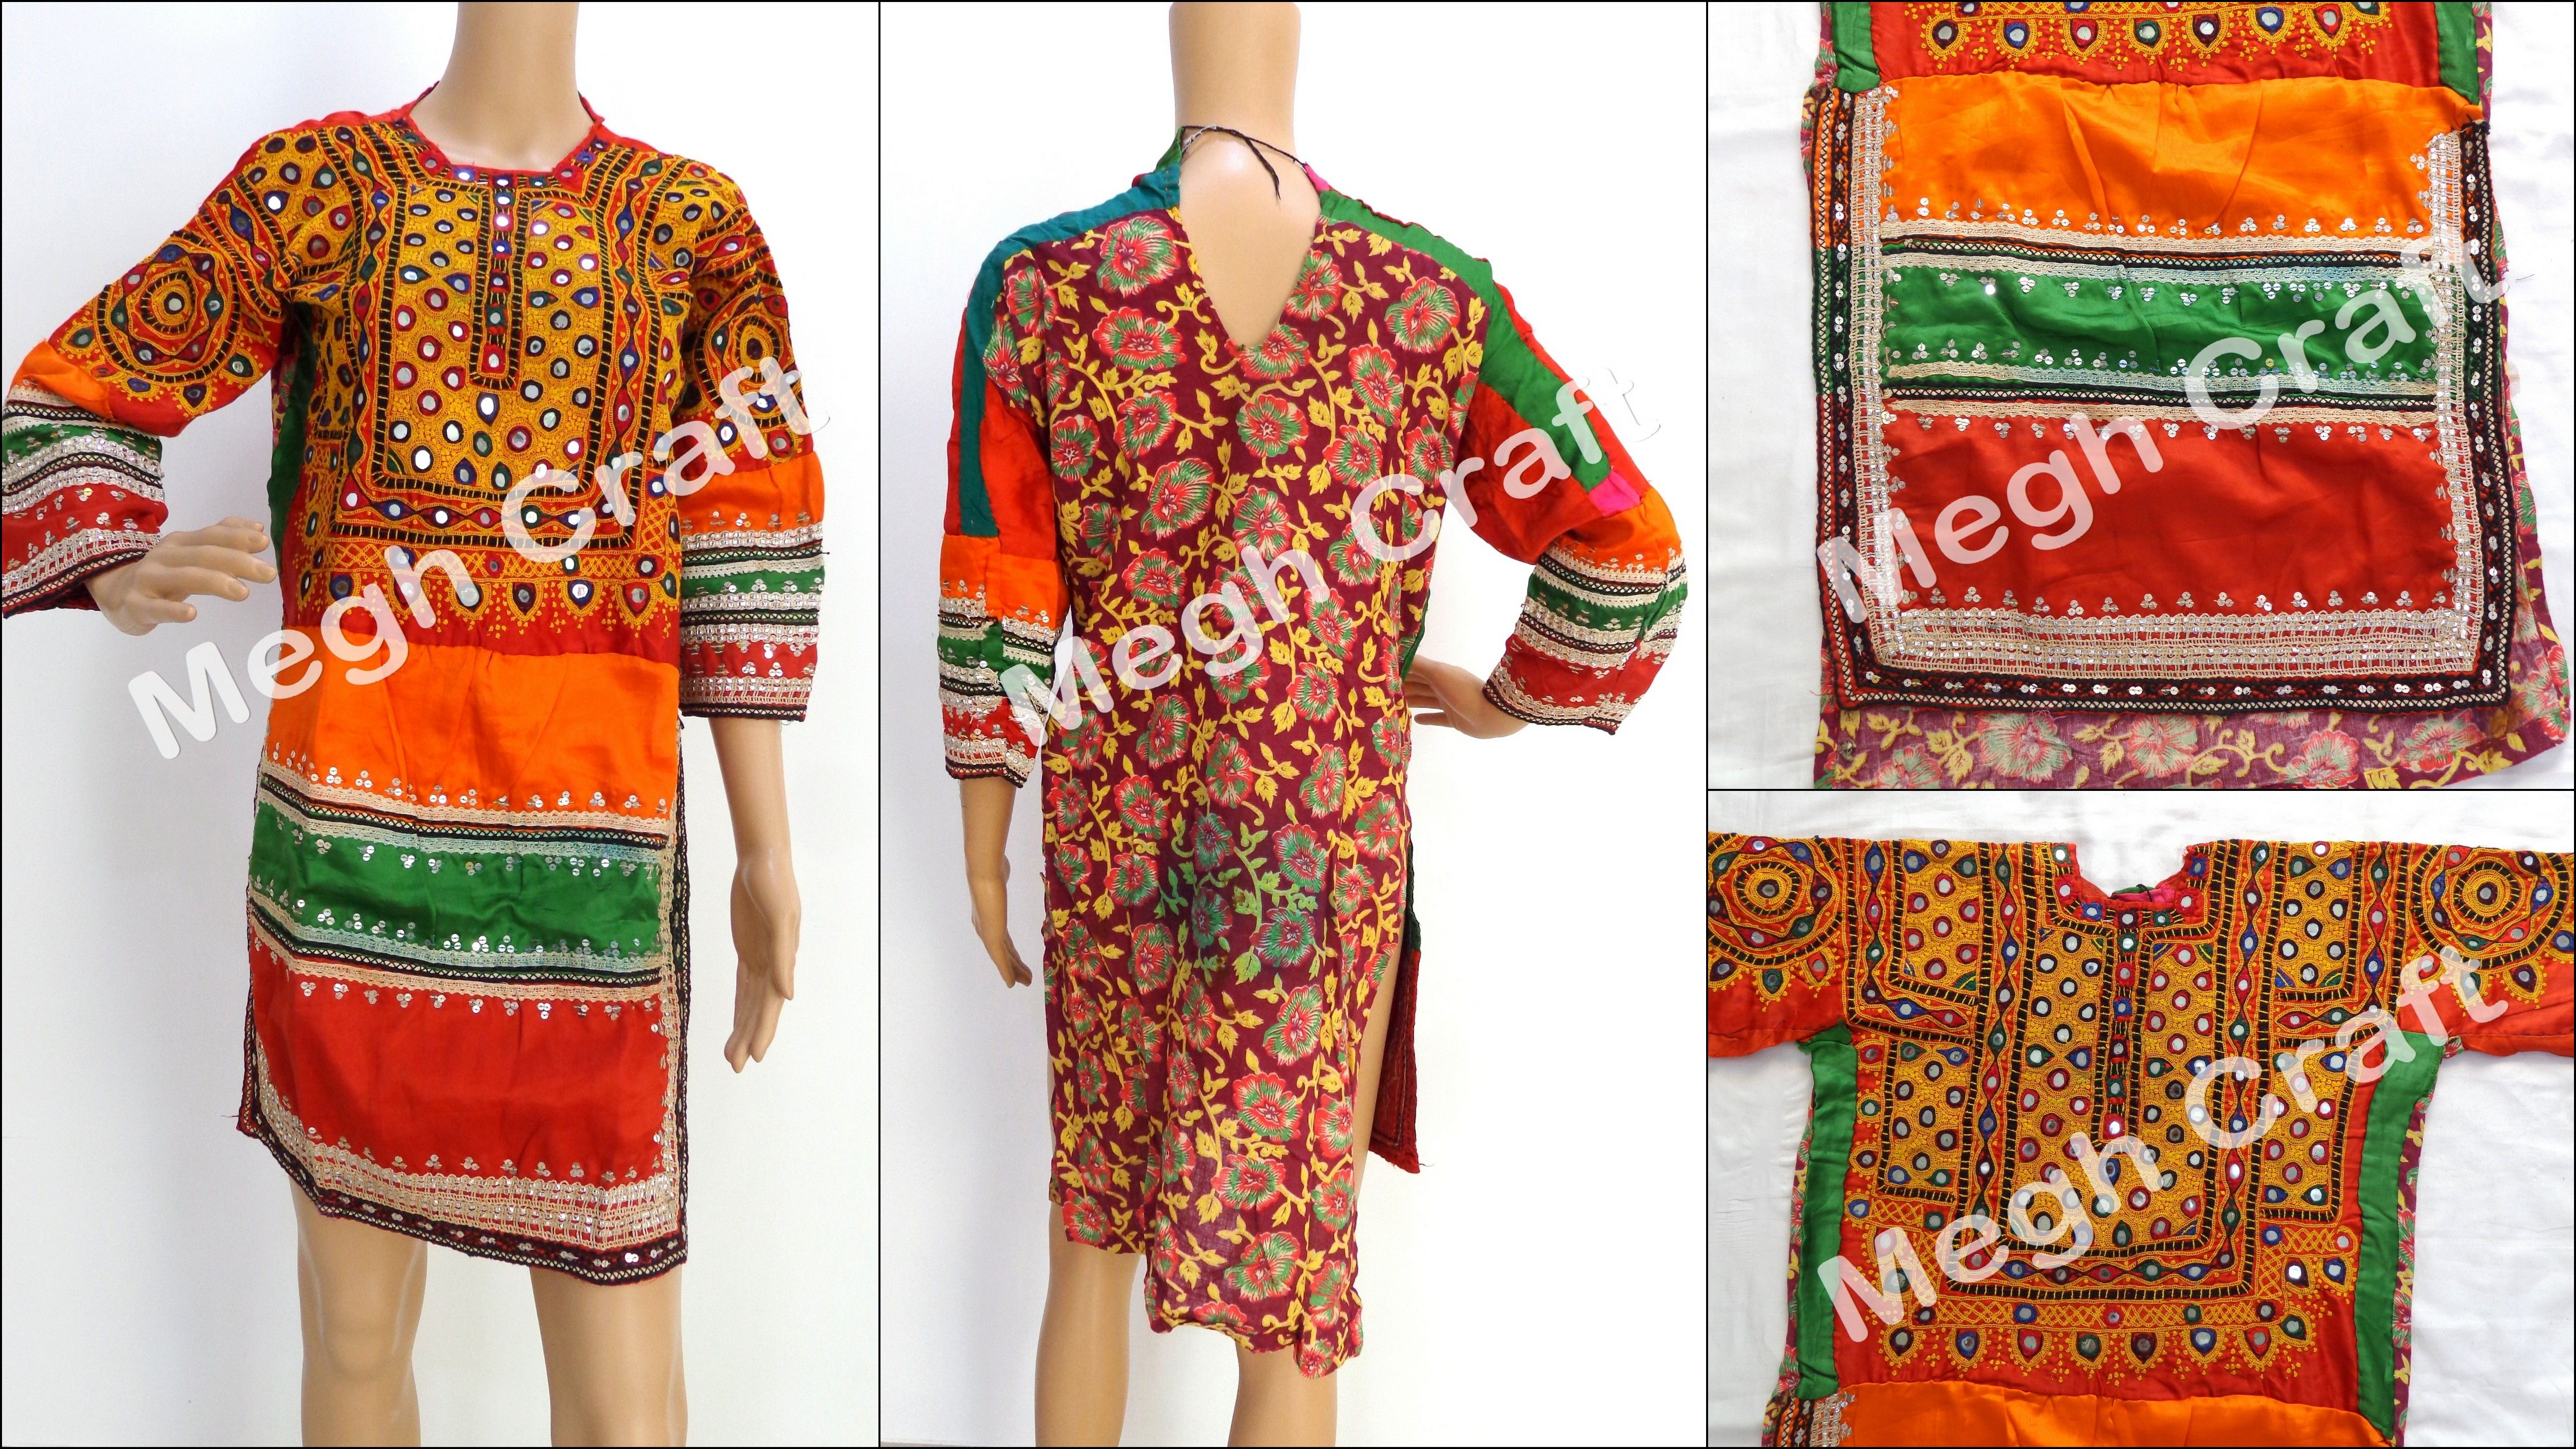 f2303b76189 afghani vintage traditional mirror and embroidery work top - Afghan dress-  balochi dress-kuchi vintage tunic- Vintage kuchi dress -ethnic dress-  bohemian ...